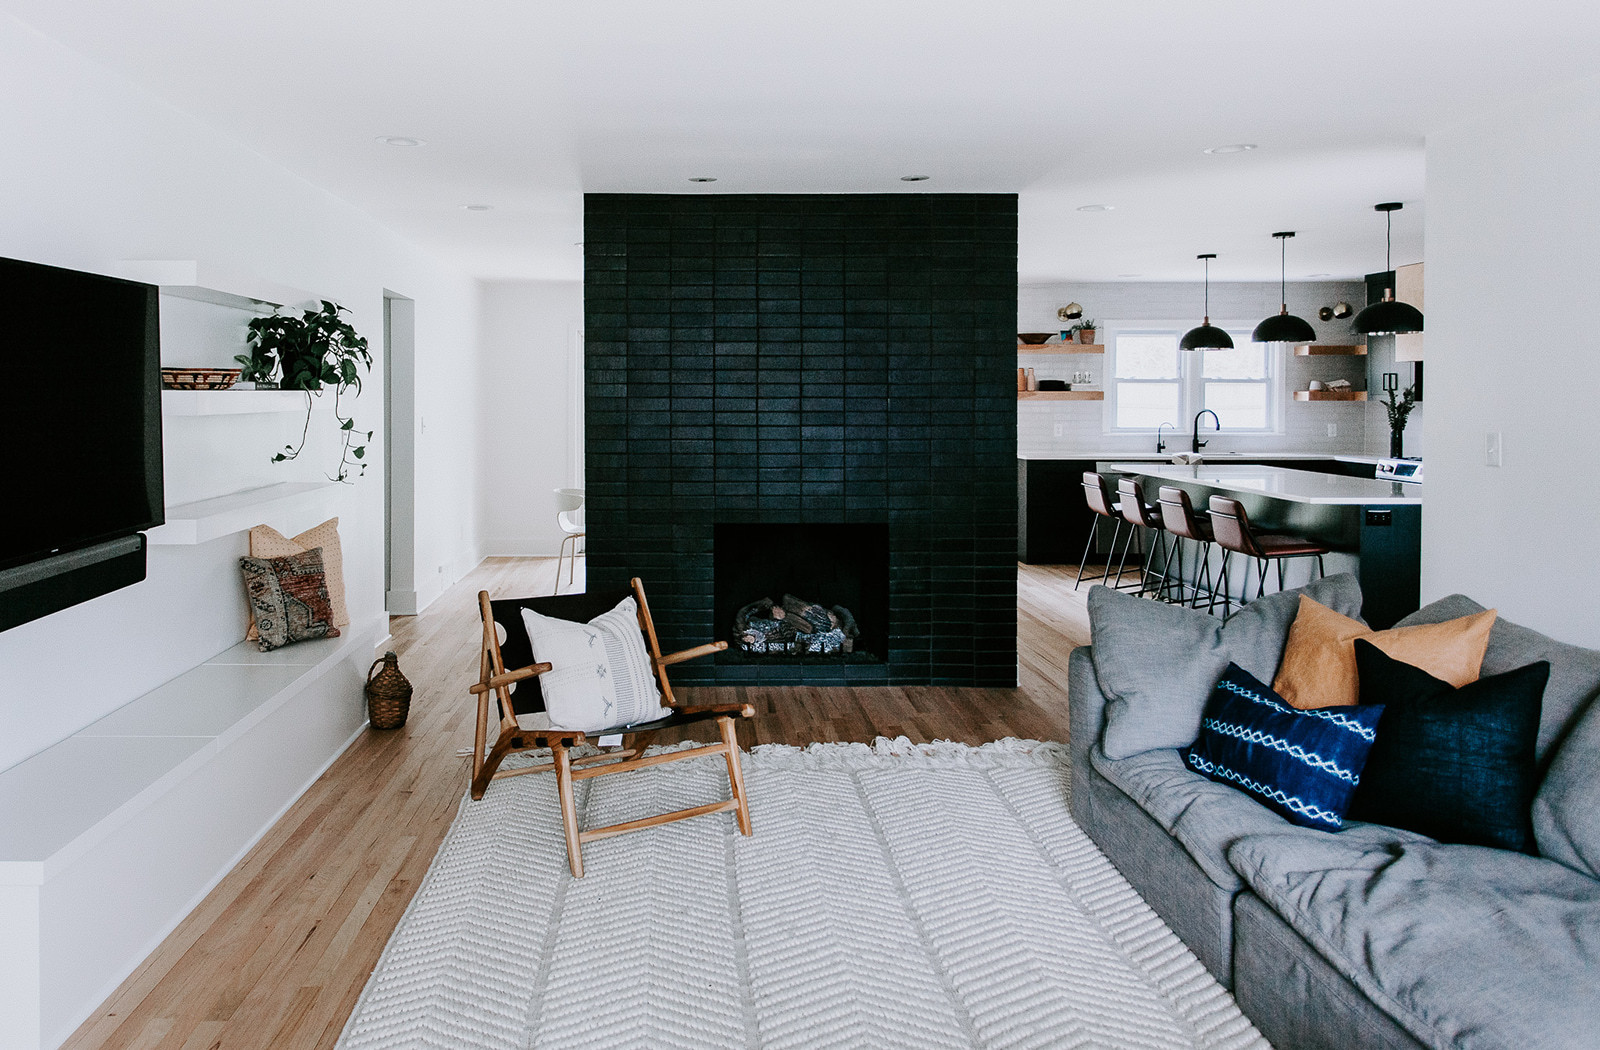 2018_Q1_Img_Residential_Hi_res_Brass_Tacks_KC_Molly_Jarvis_Designer_Erin_Hasset_Photographer_fireplace_brick_Black_hills_straight_stack_black_grout_living_room_glazed_edge_trim_standard_corner_kitchen_white_mountains_FC-214824.jpg?mtime=20181105163438#asset:424507